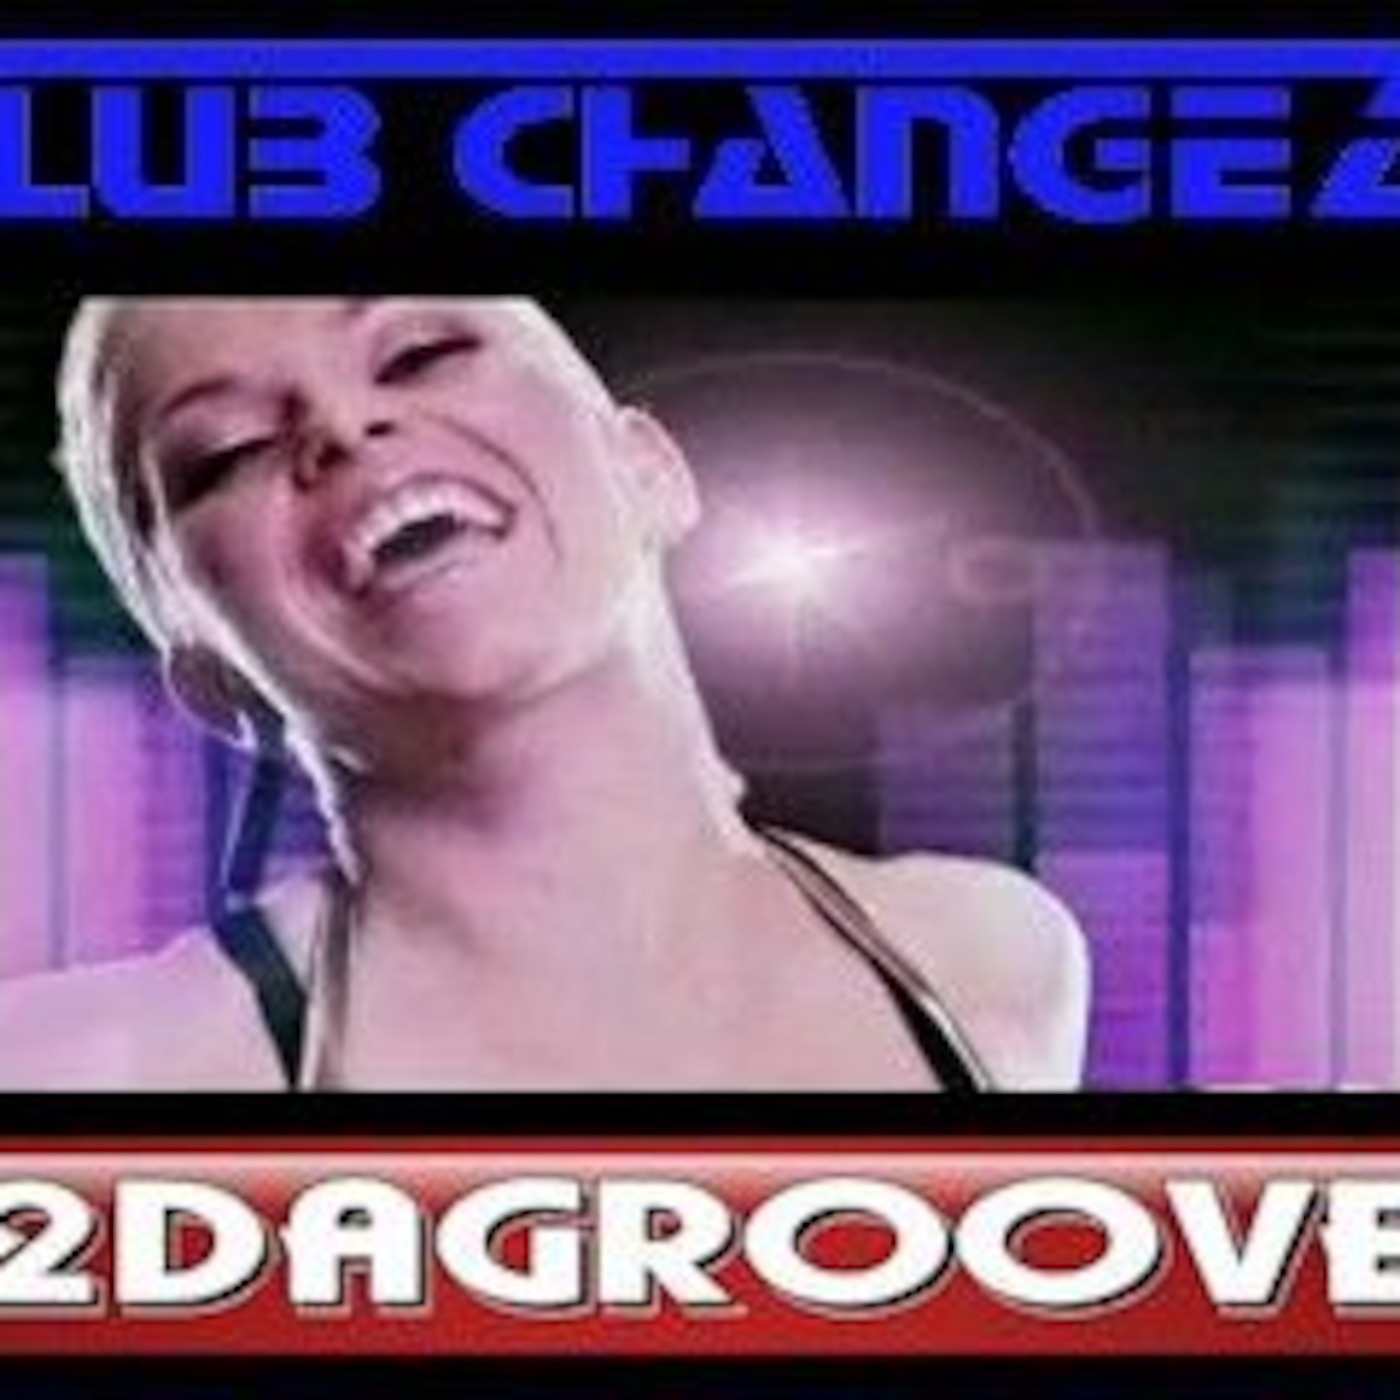 Club Changez 2DaGroove Radio